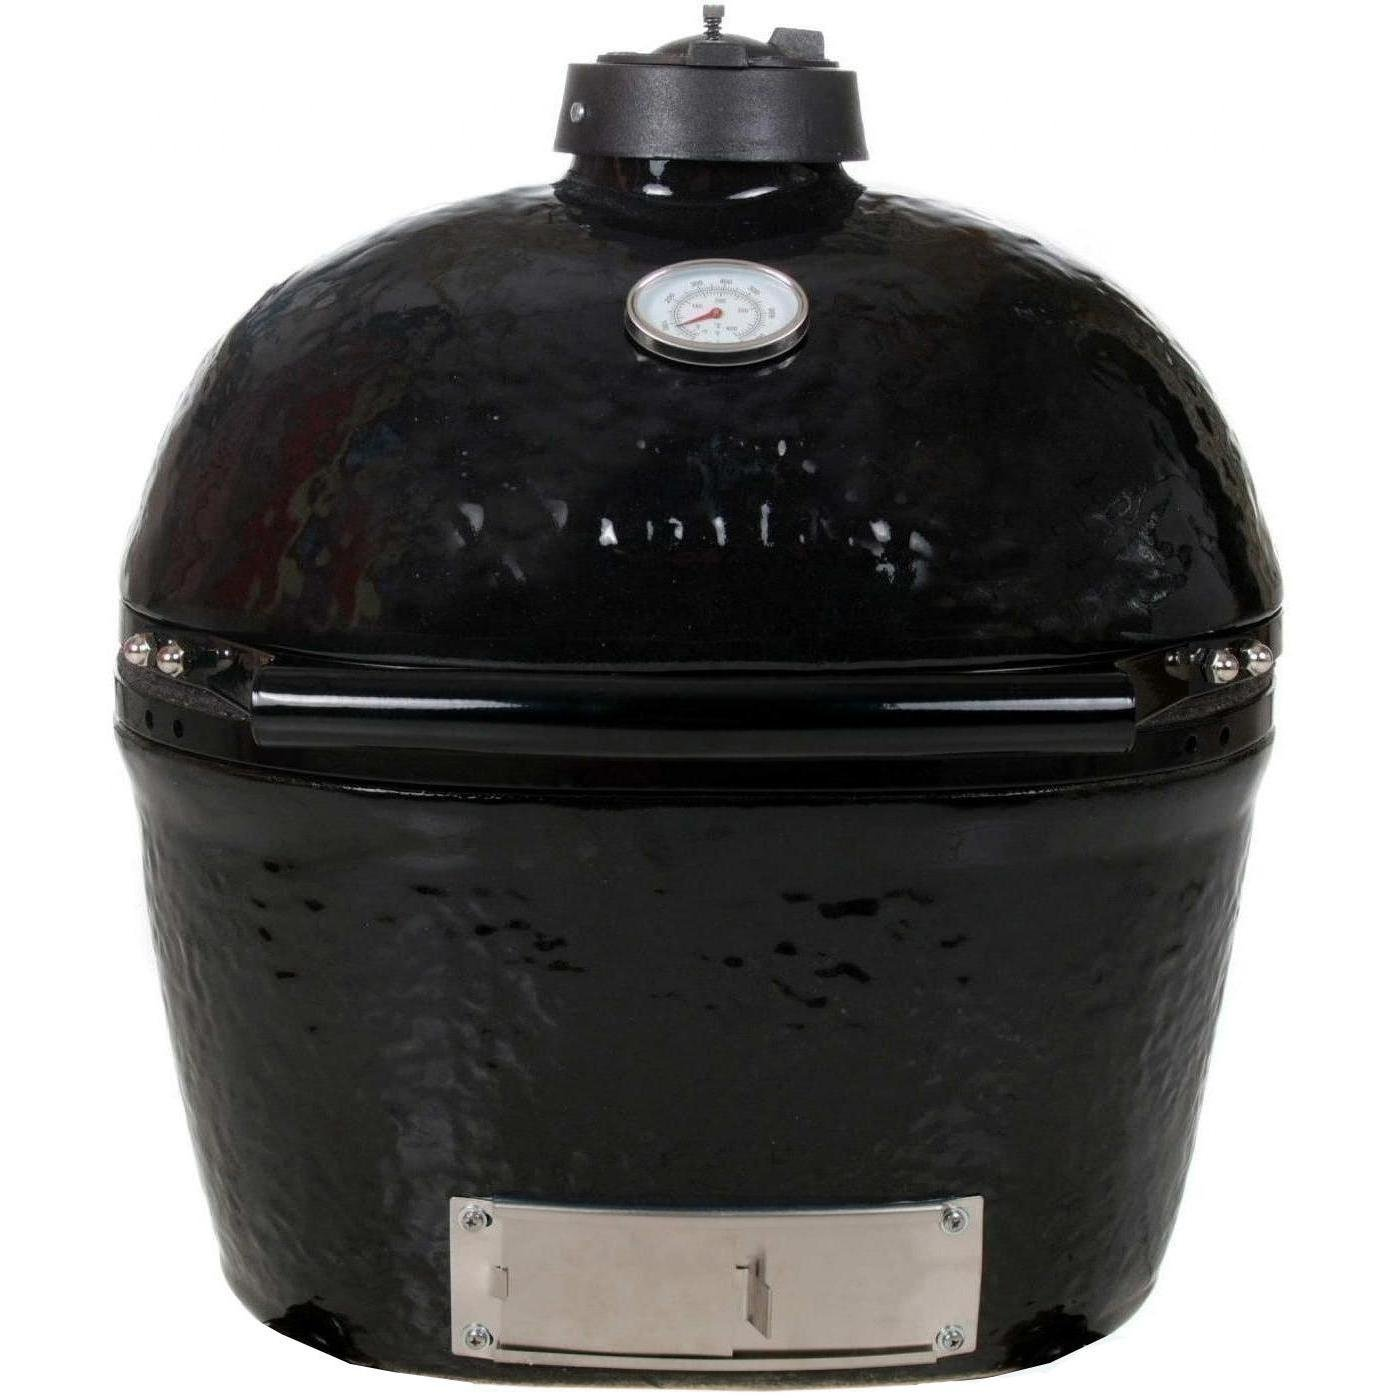 Primo 774 best ceramic charcoal grill and smoker